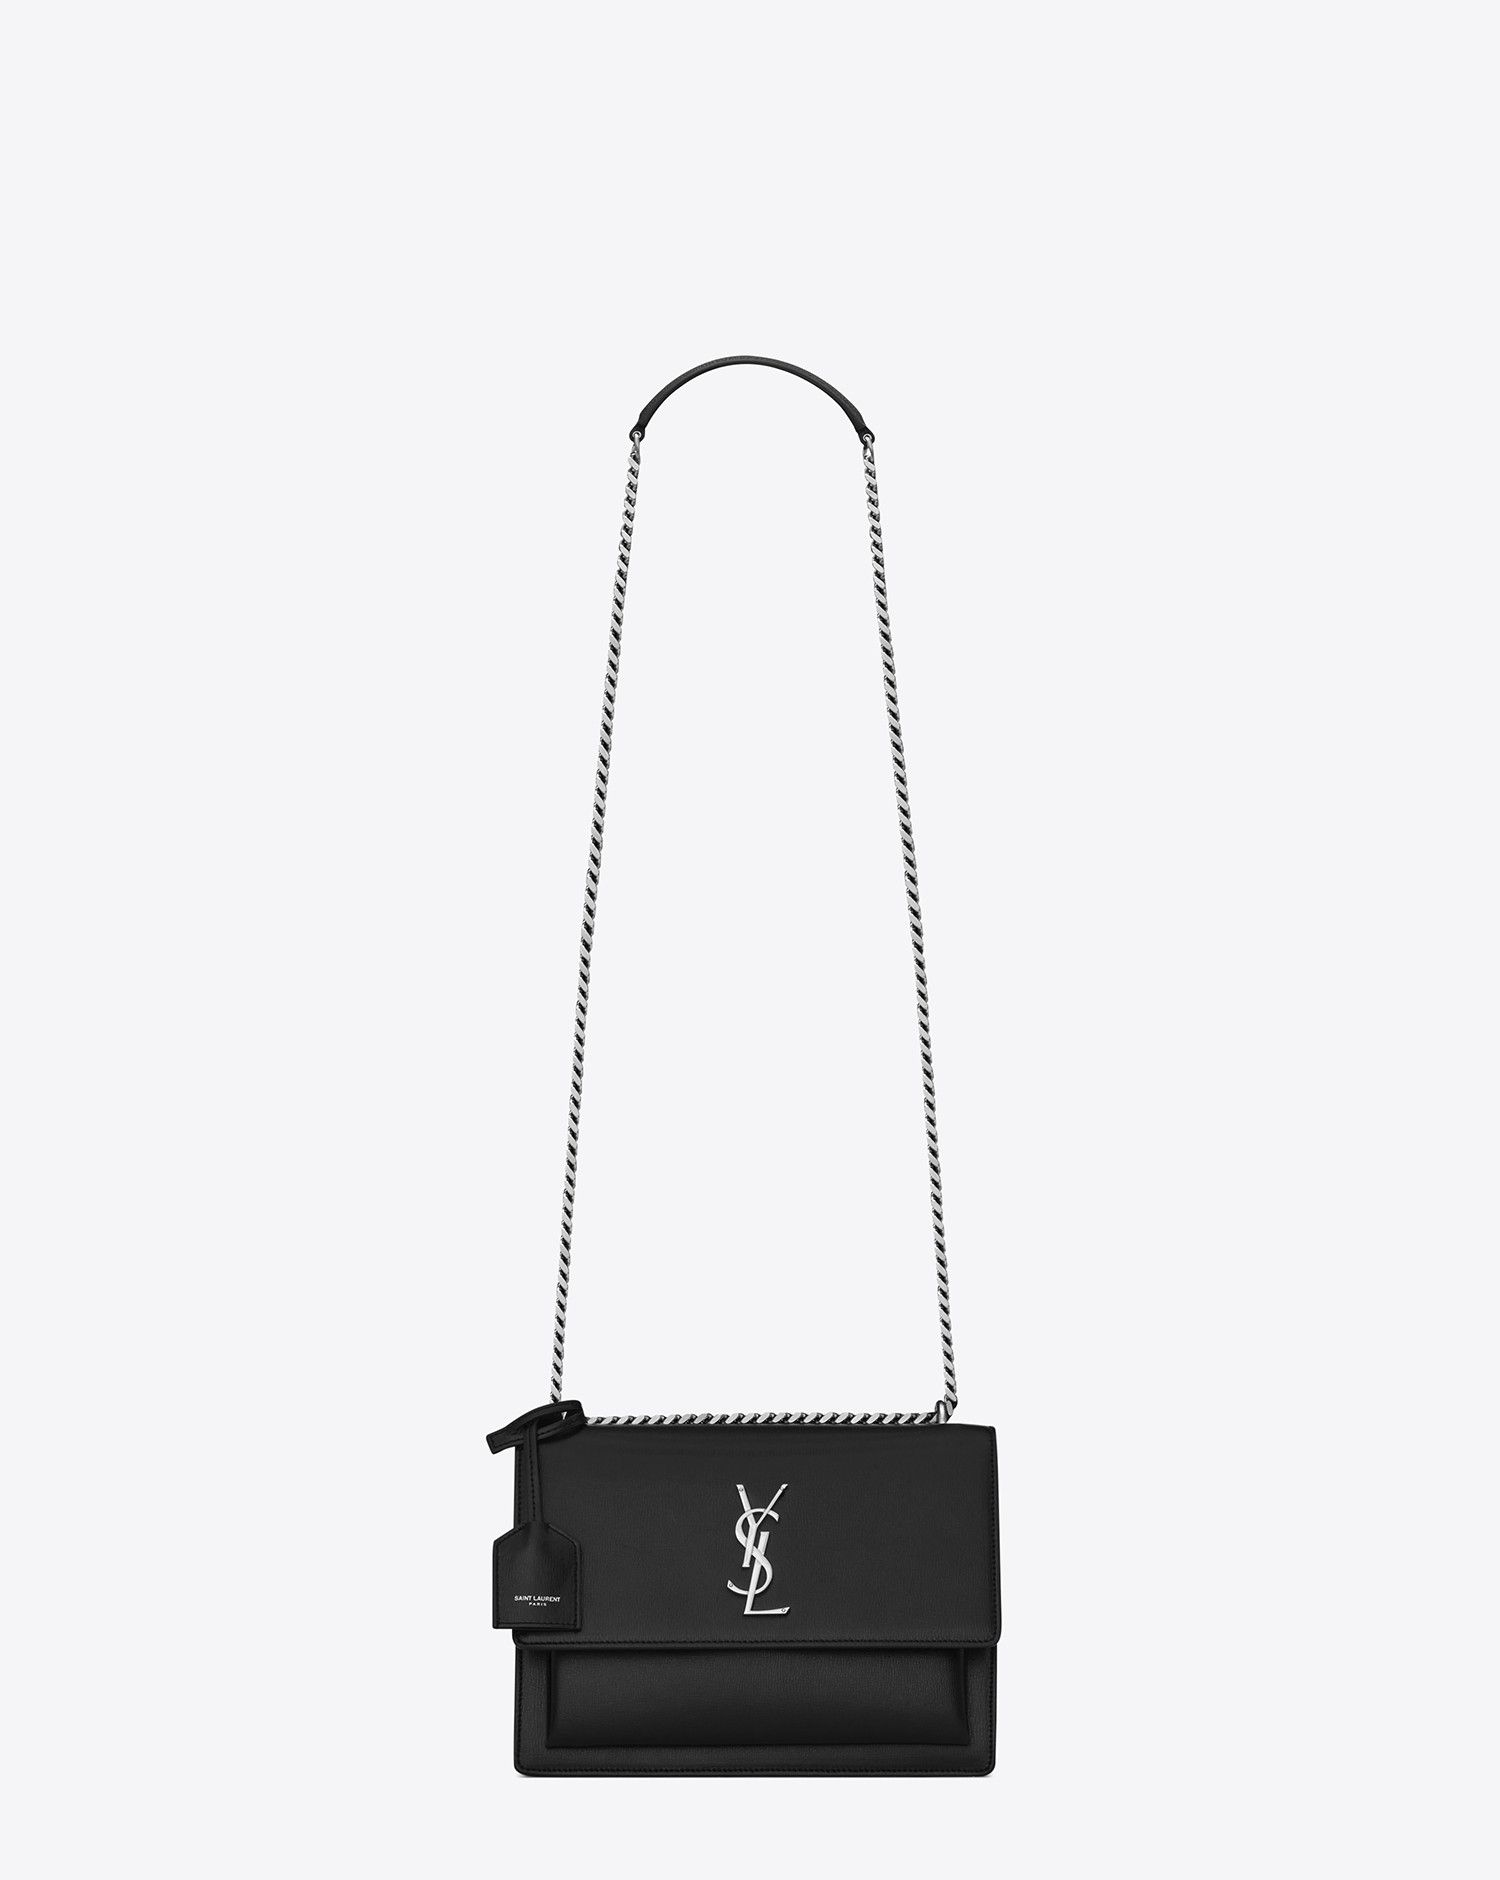 Saint Laurent Medium SUNSET MONOGRAM SAINT LAURENT Bag In Black  d9b66f03ed7cd